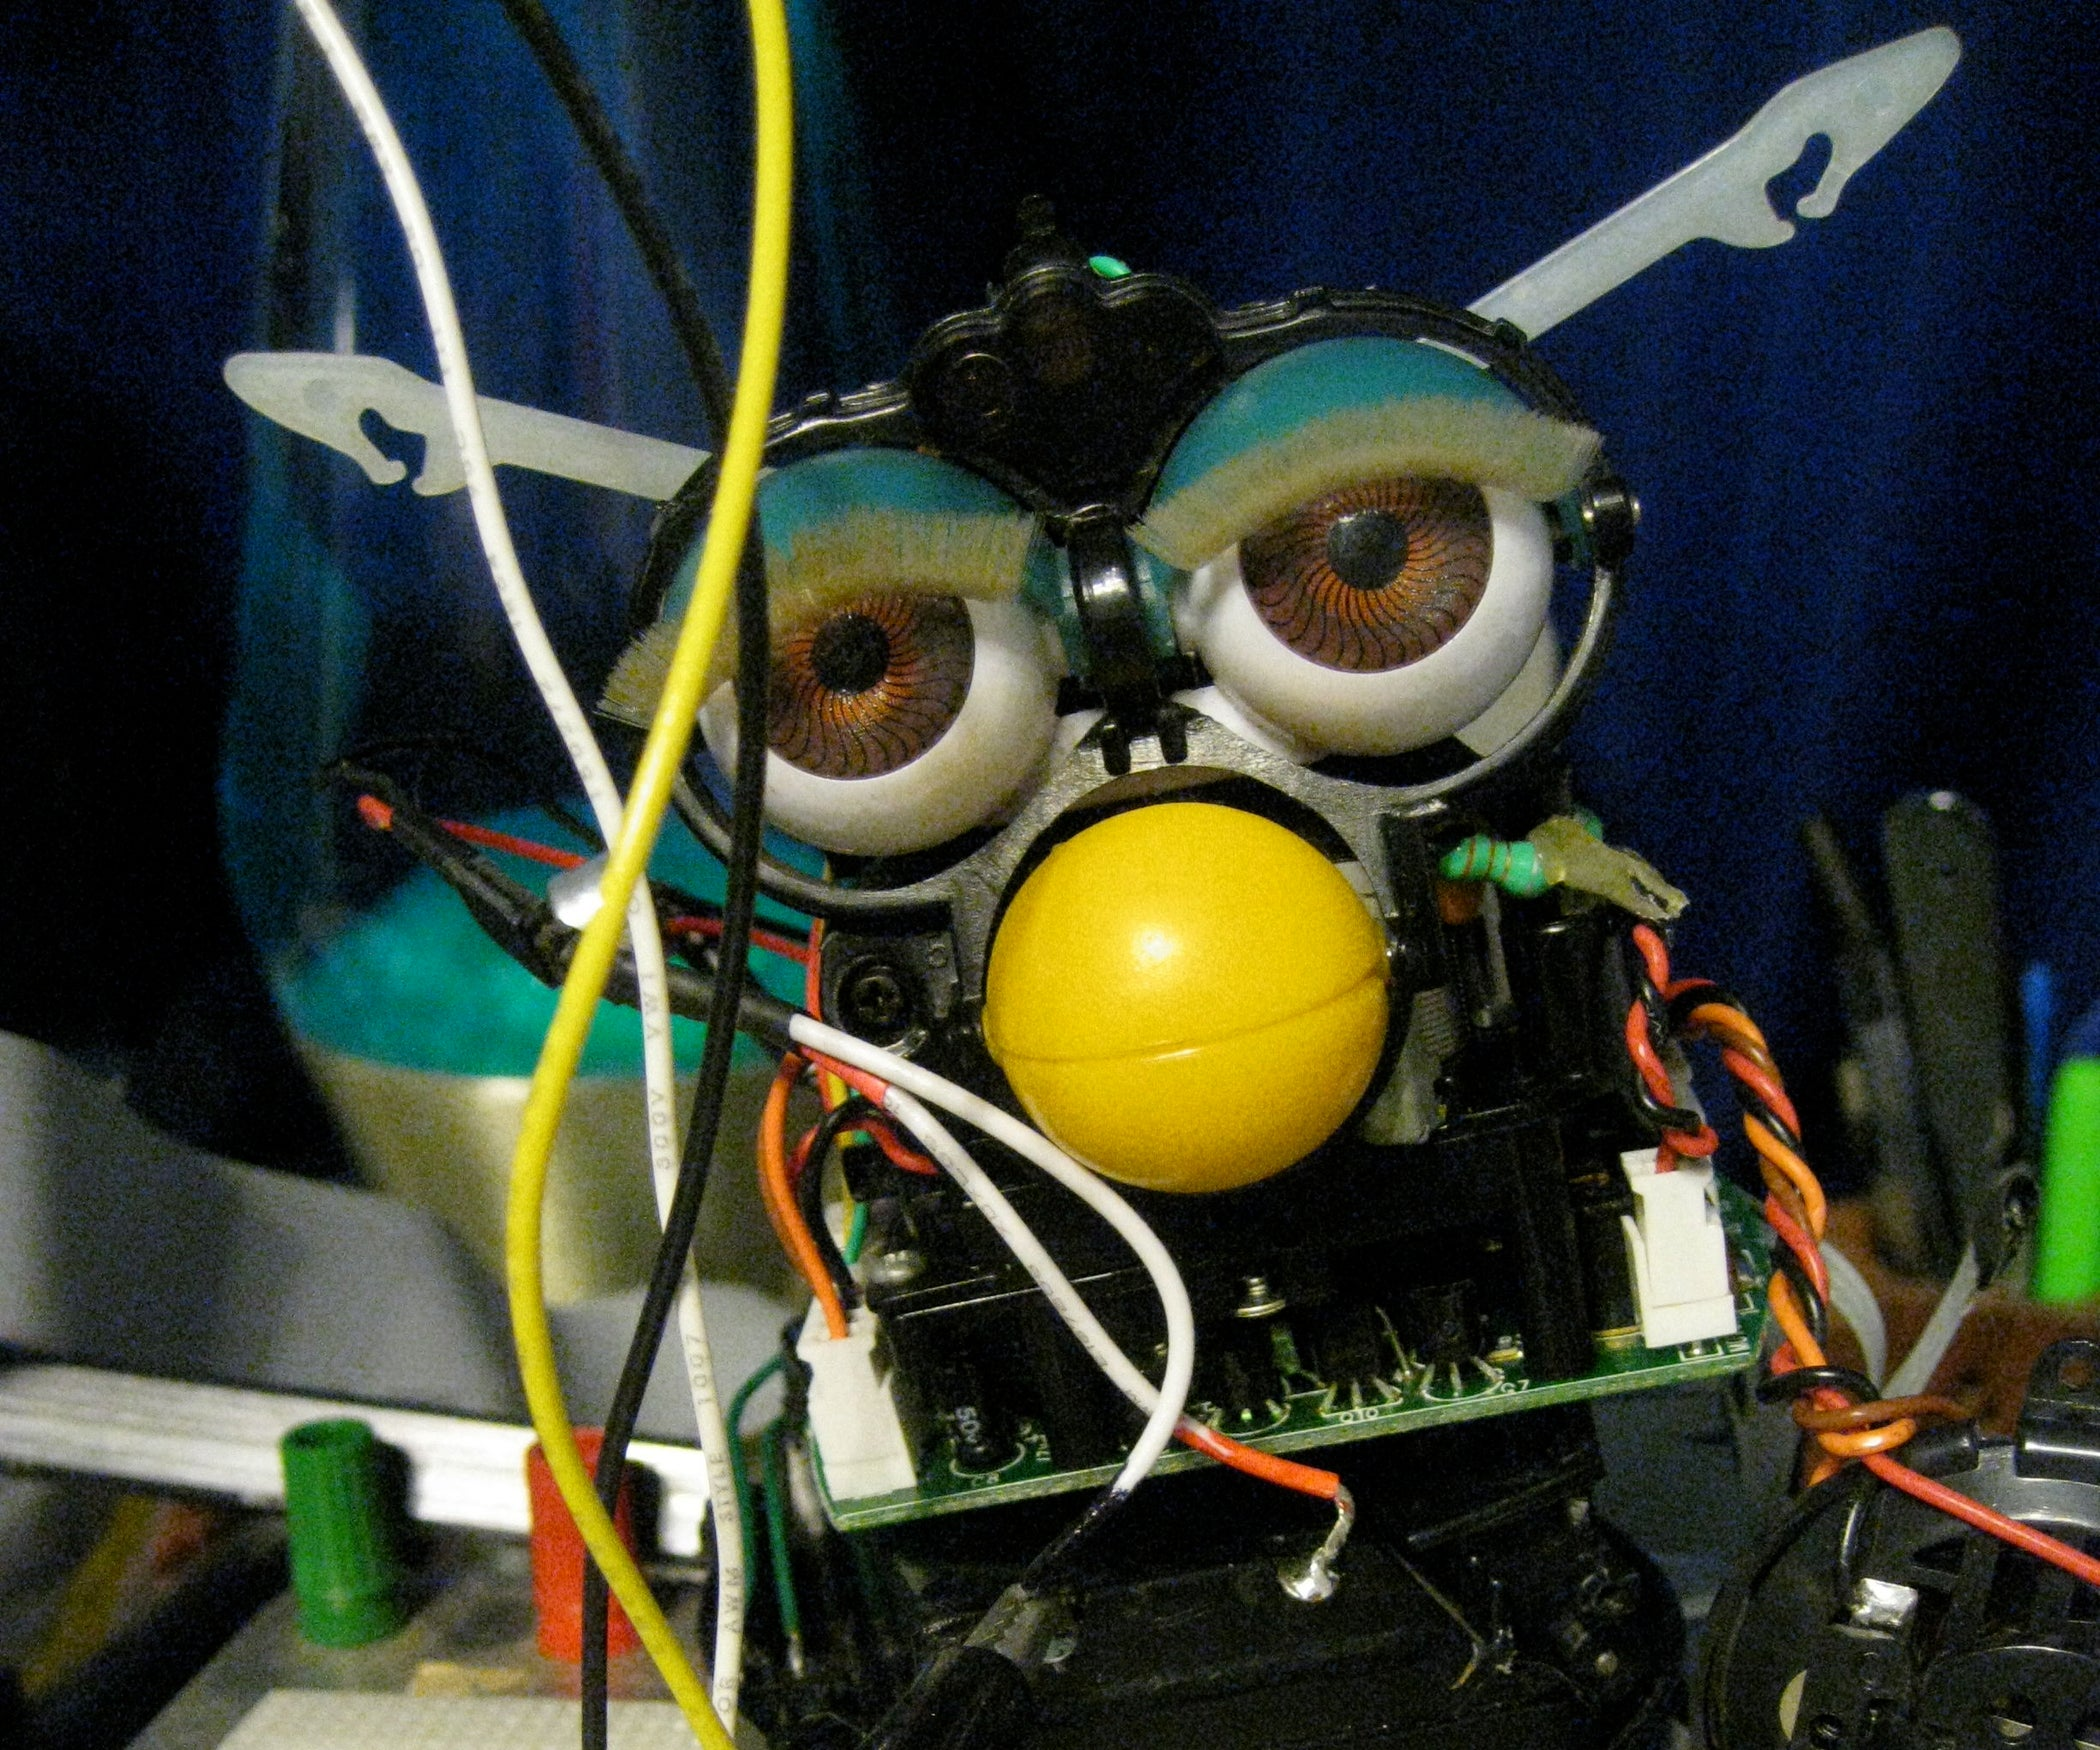 Control A Furby With Arduino Or Other Microcontroller 9 Steps Circuit Bent Pictures